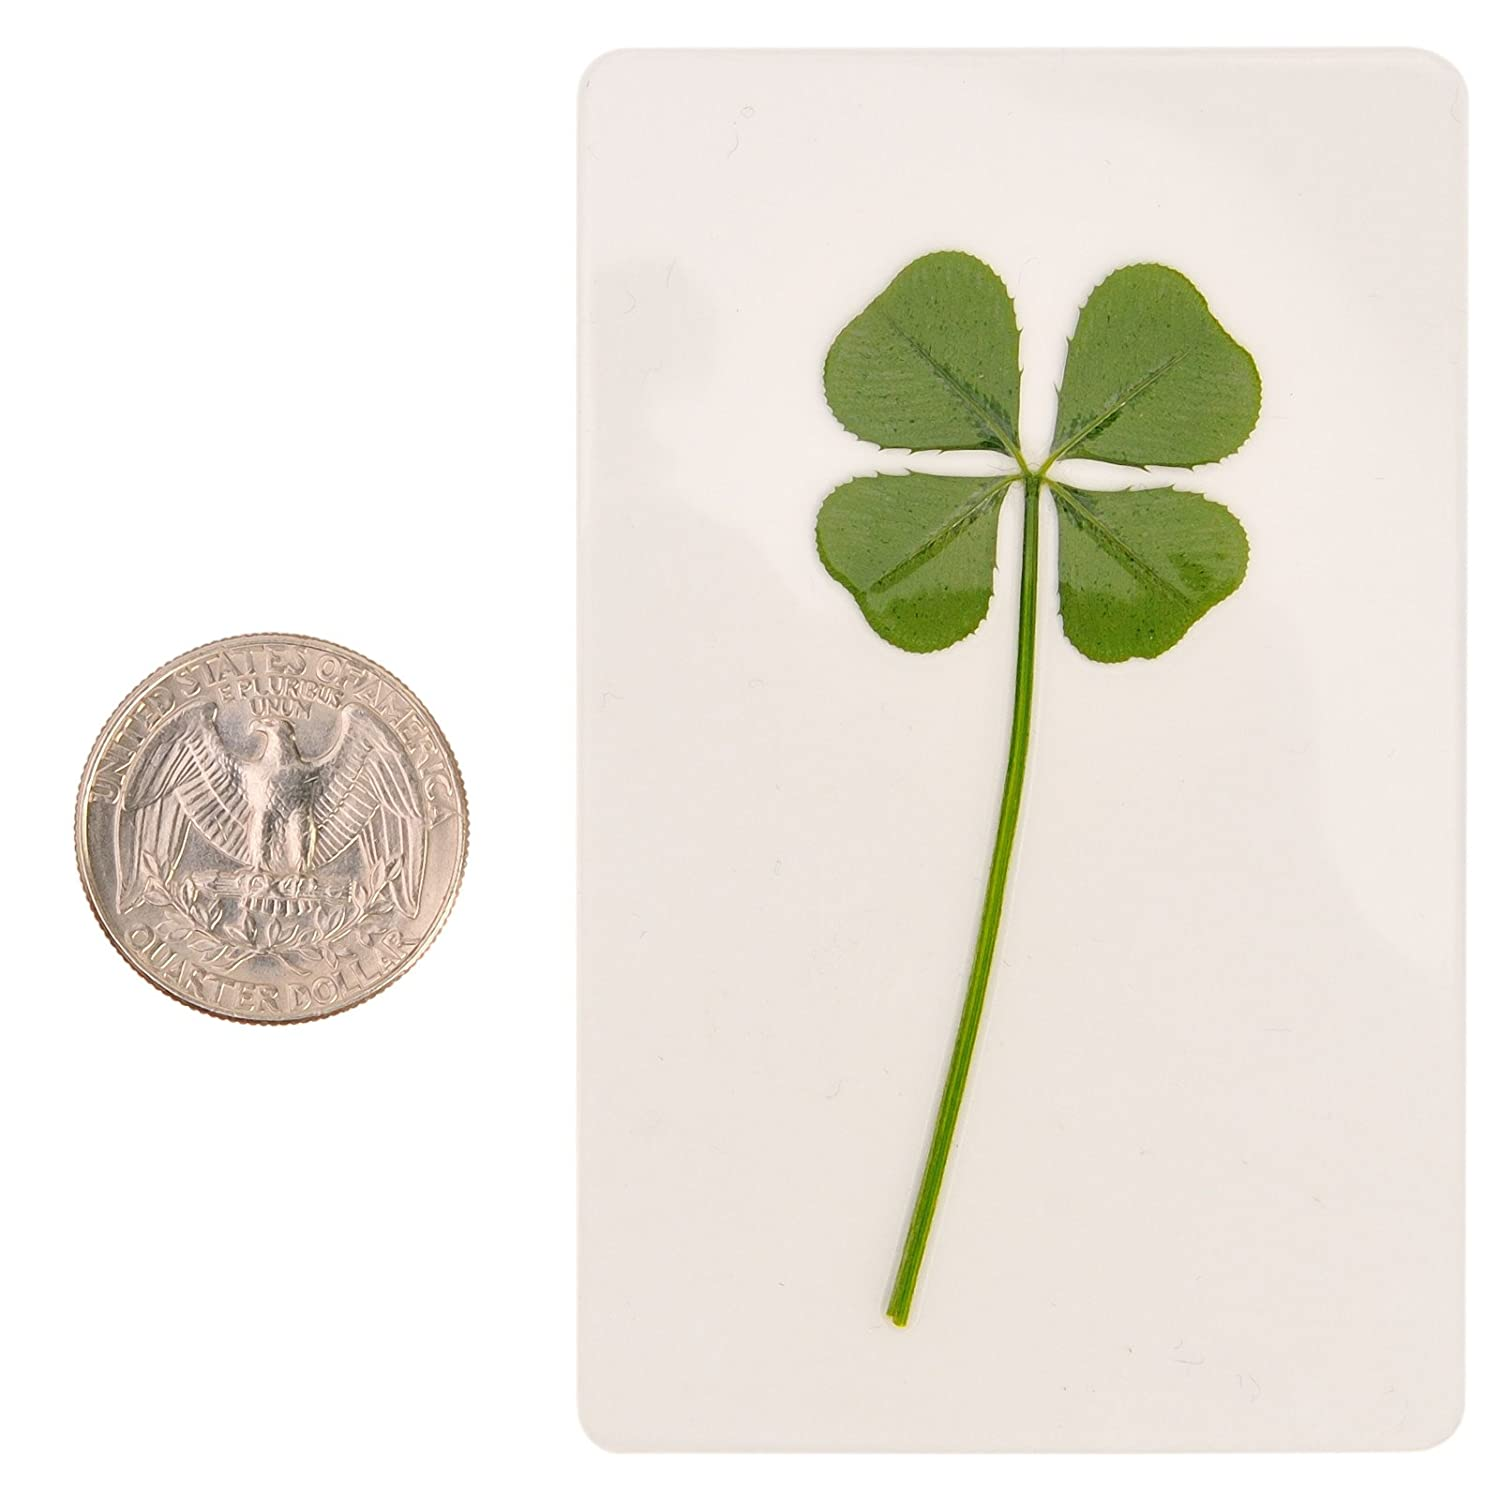 Saint Patrics Day Bookmarks Irish Shamrock Good Luck Charm for Smartphone Wallet Case Amulet Purse Coating Gift Thanks Card M ARTMART Genuine Real 4 Four-Leaf Green Clover St